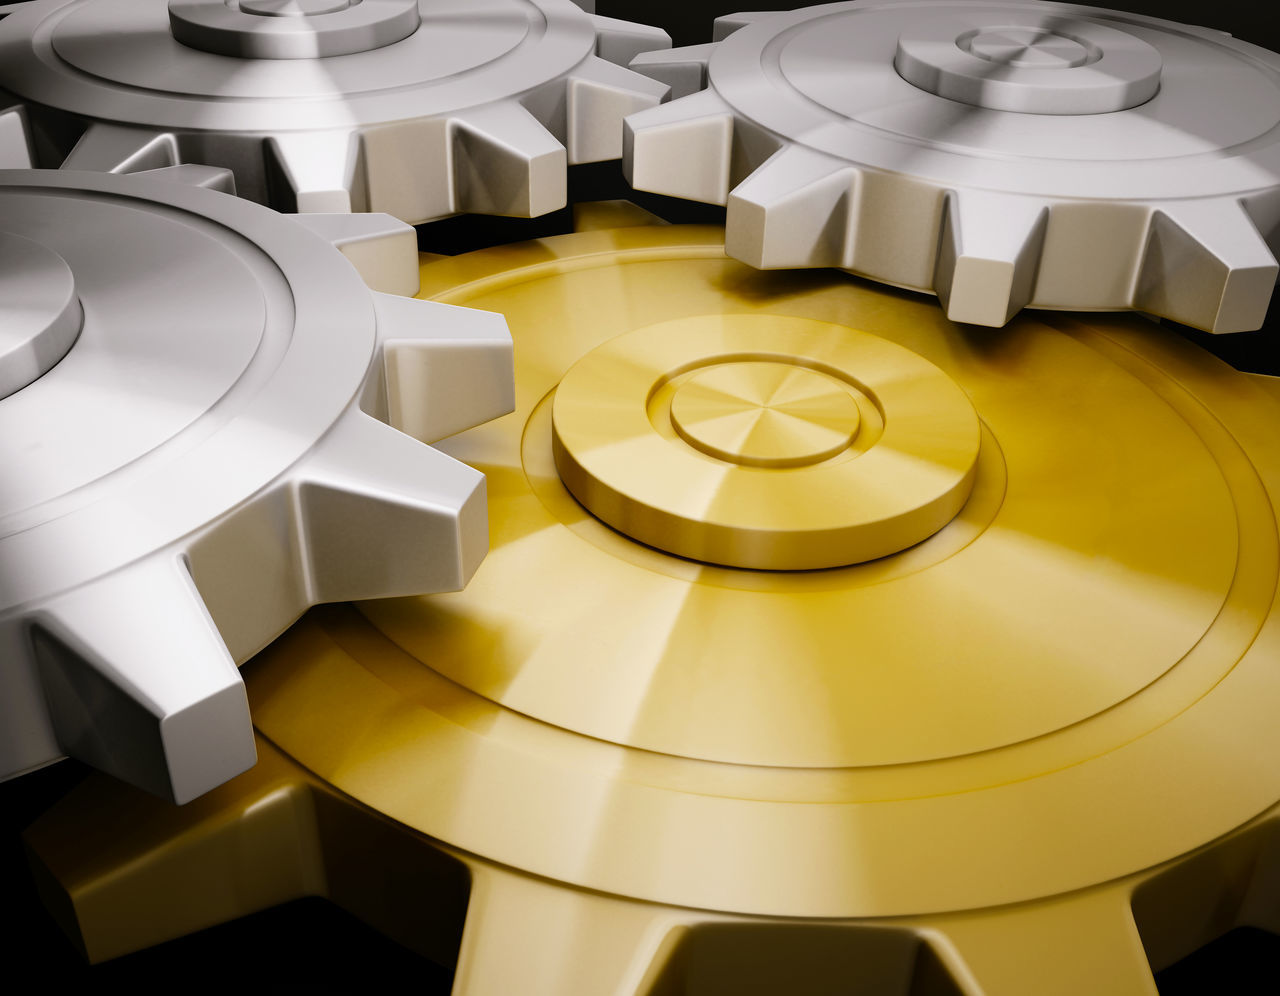 Bussiness Clockworks Concept Conceptual Futuristic Gear Gold Gold Colored Innovation Machine Part Machinery No People